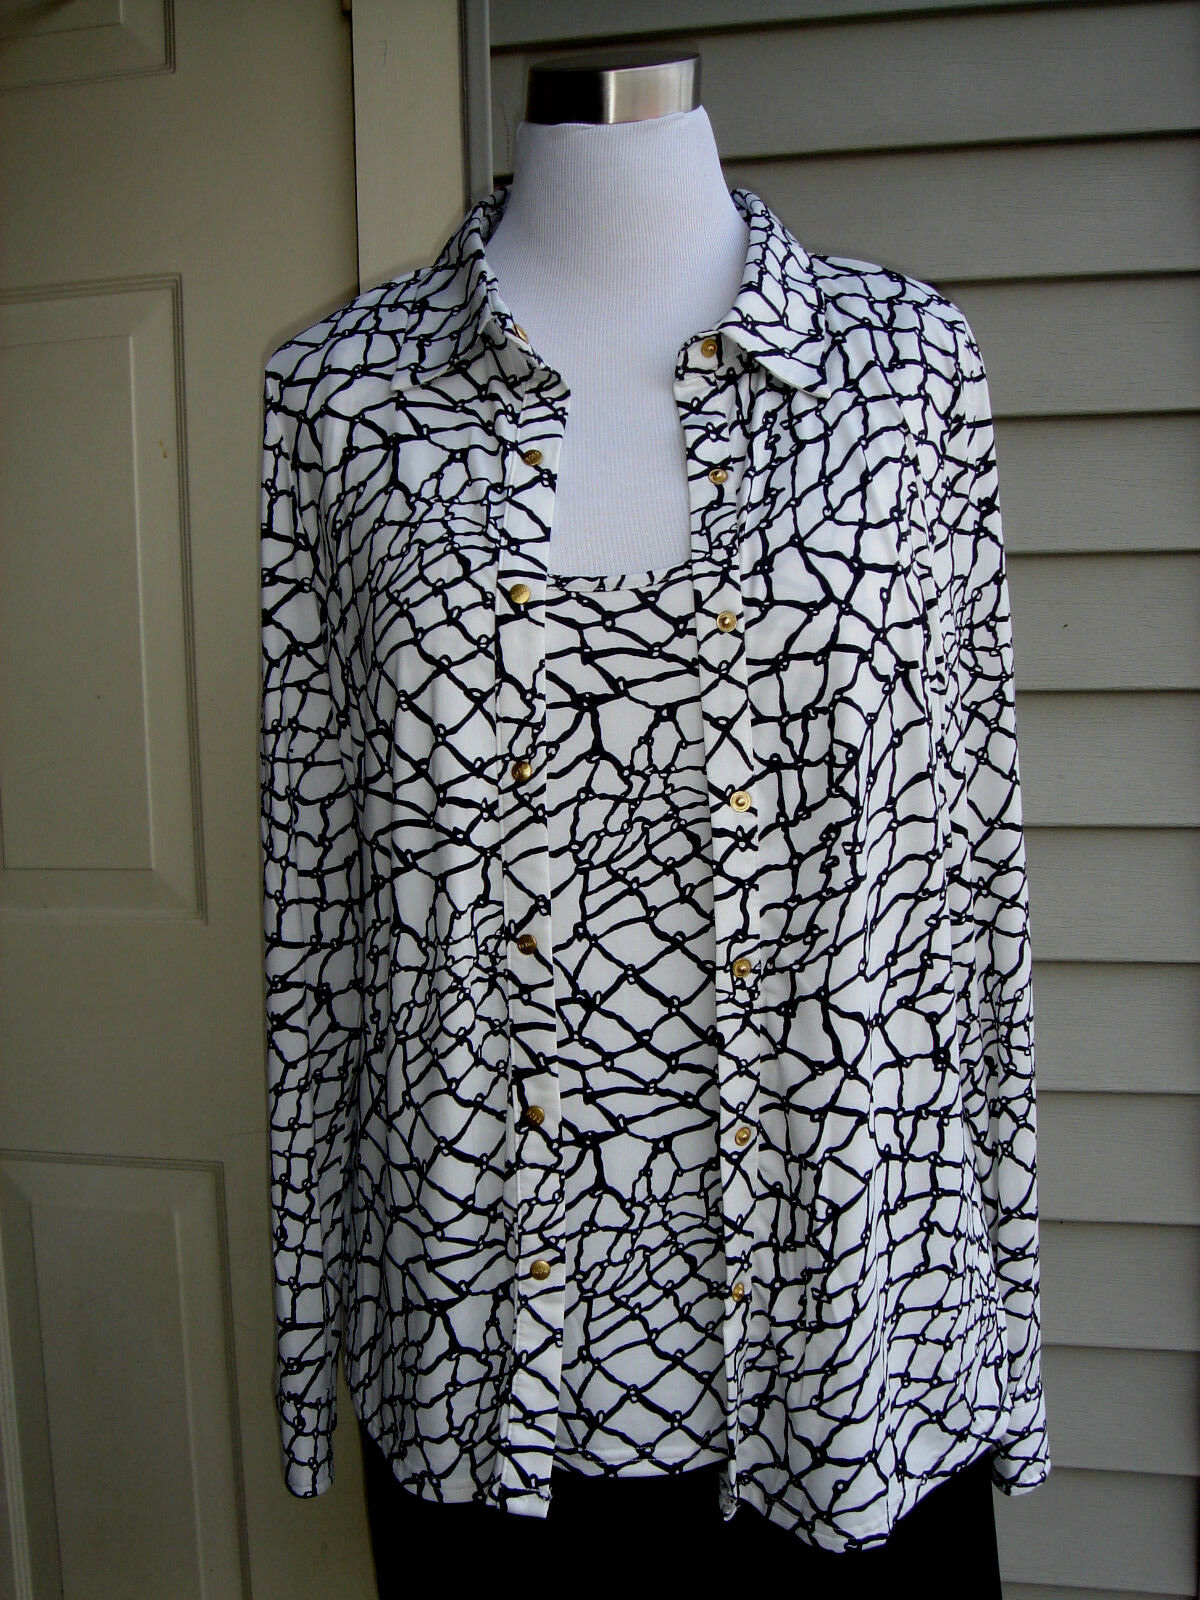 NWT  BCBGMAXAZRIA MULTI-Farbe POLYESTER BLOUSE WITH BUILD IN TOP Größe XL